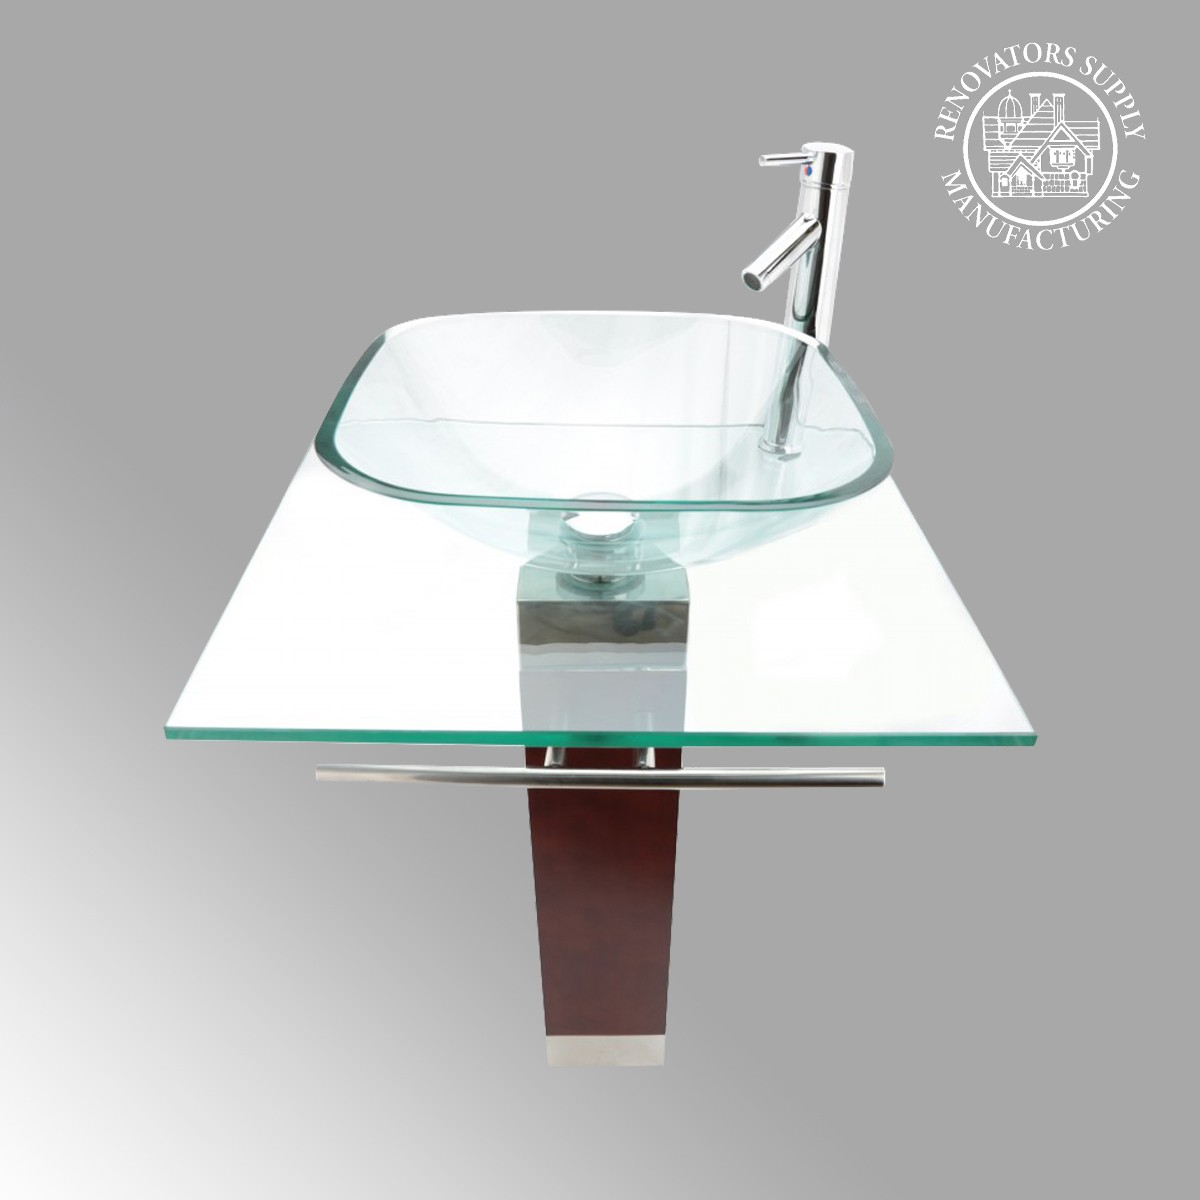 Modern pedestal bathroom sinks - Tempered Glass Pedestal Sink Chrome Faucet Towel Bar And Drain Combo